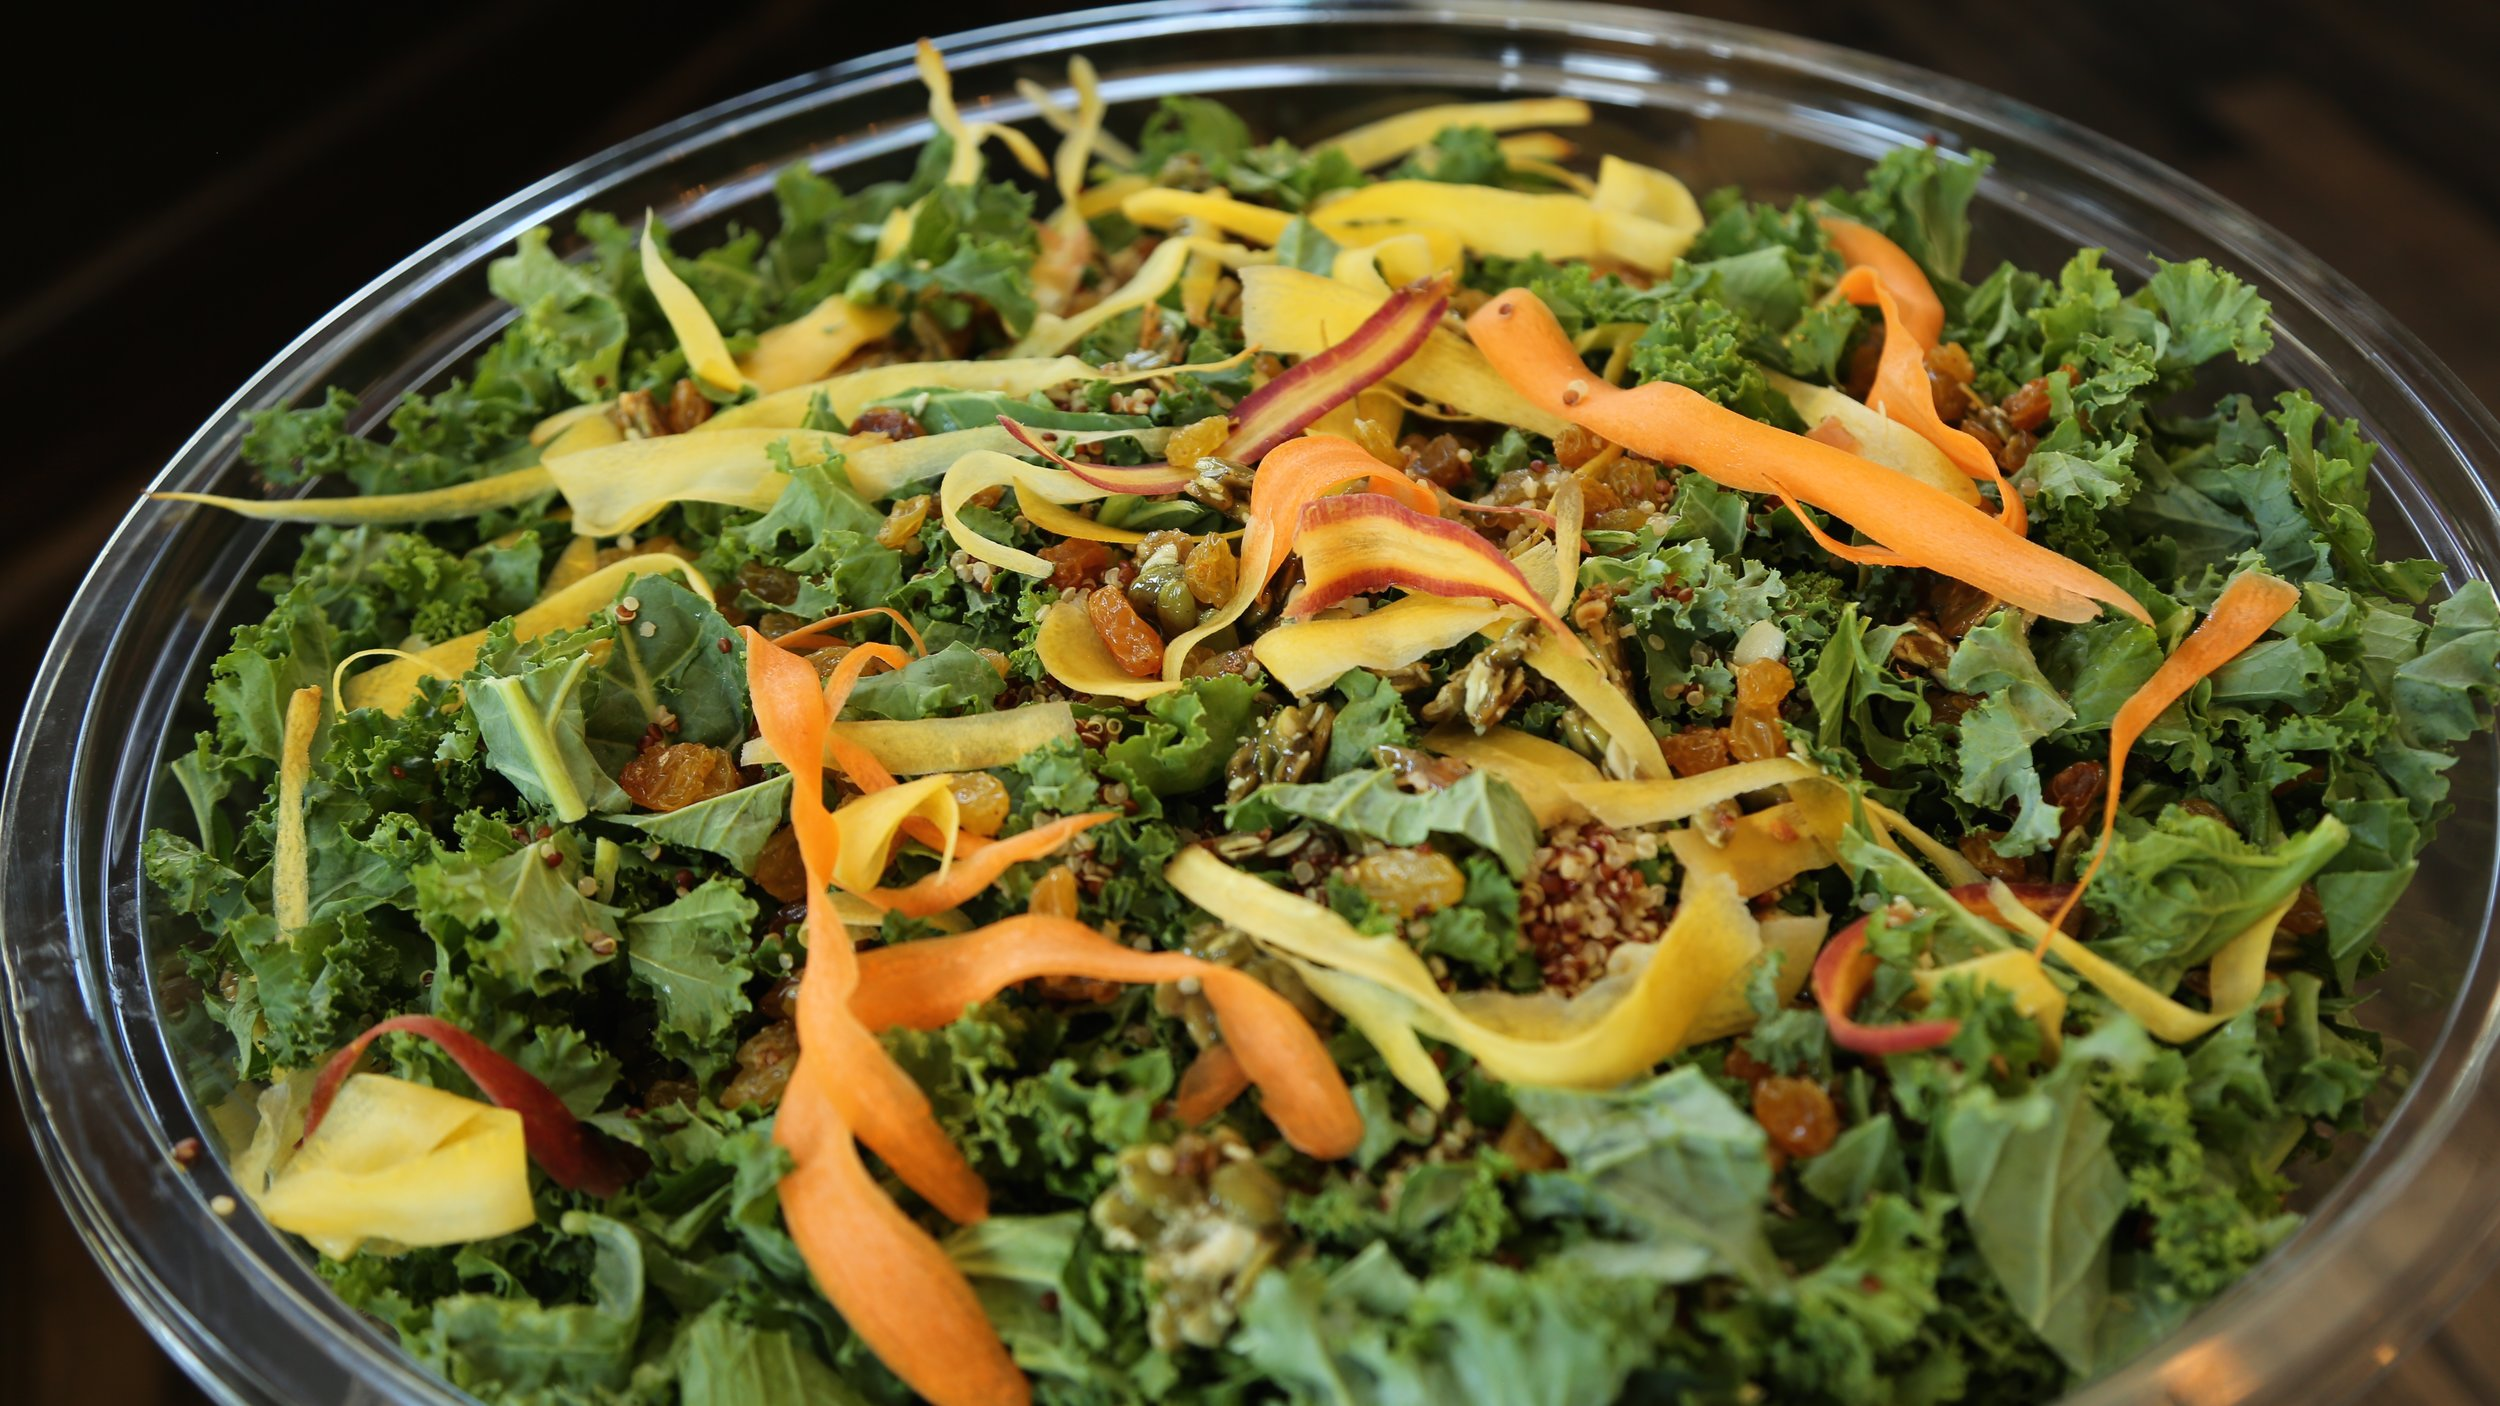 Kale quinoa salad with carrot ribbons, golden raisins, pepita sesame clusters